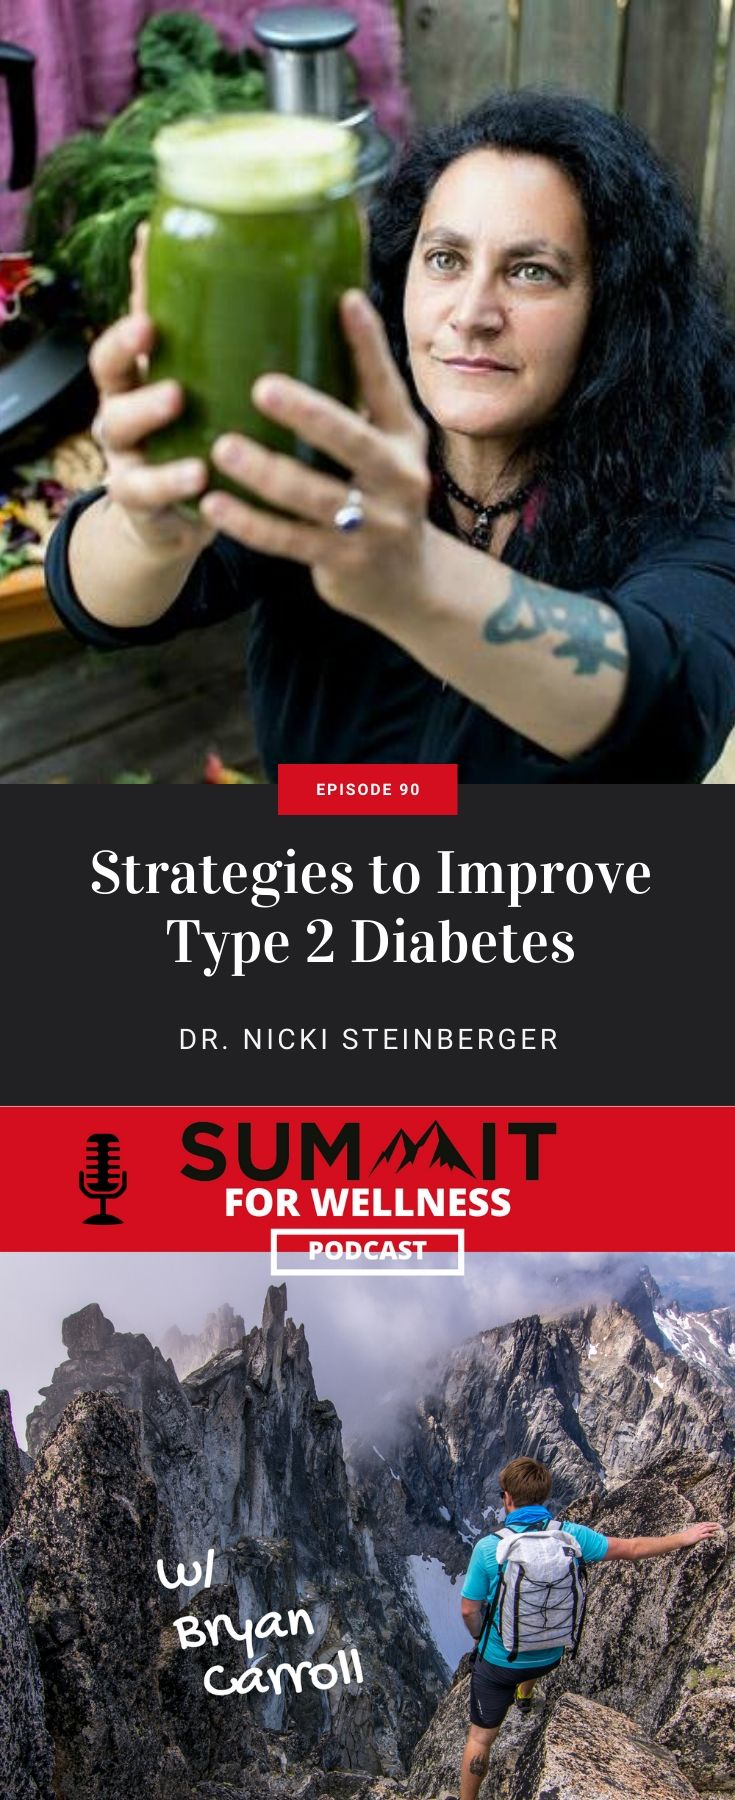 Dr. Nicki Steinberger teaches us how to reverse Type 2 Diabetes naturally